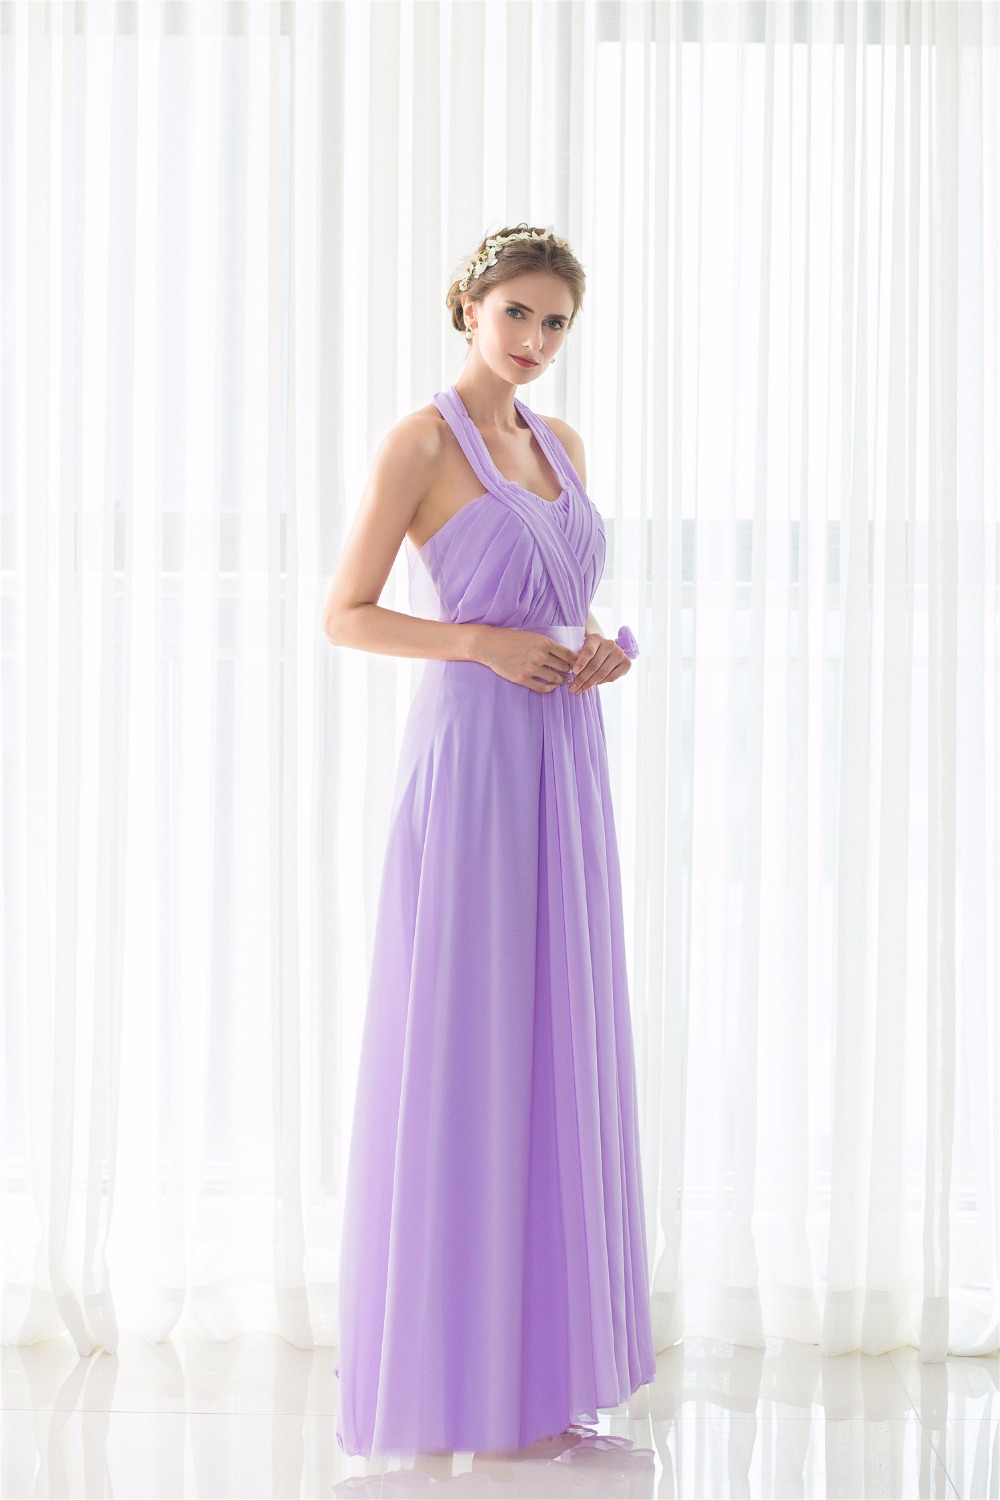 2017 modest lavender bridesmaid dress floor length halter open 2017 modest lavender bridesmaid dress floor length halter open back robe demoiselle dhonneur formal wedding guest dresses in bridesmaid dresses from ombrellifo Image collections